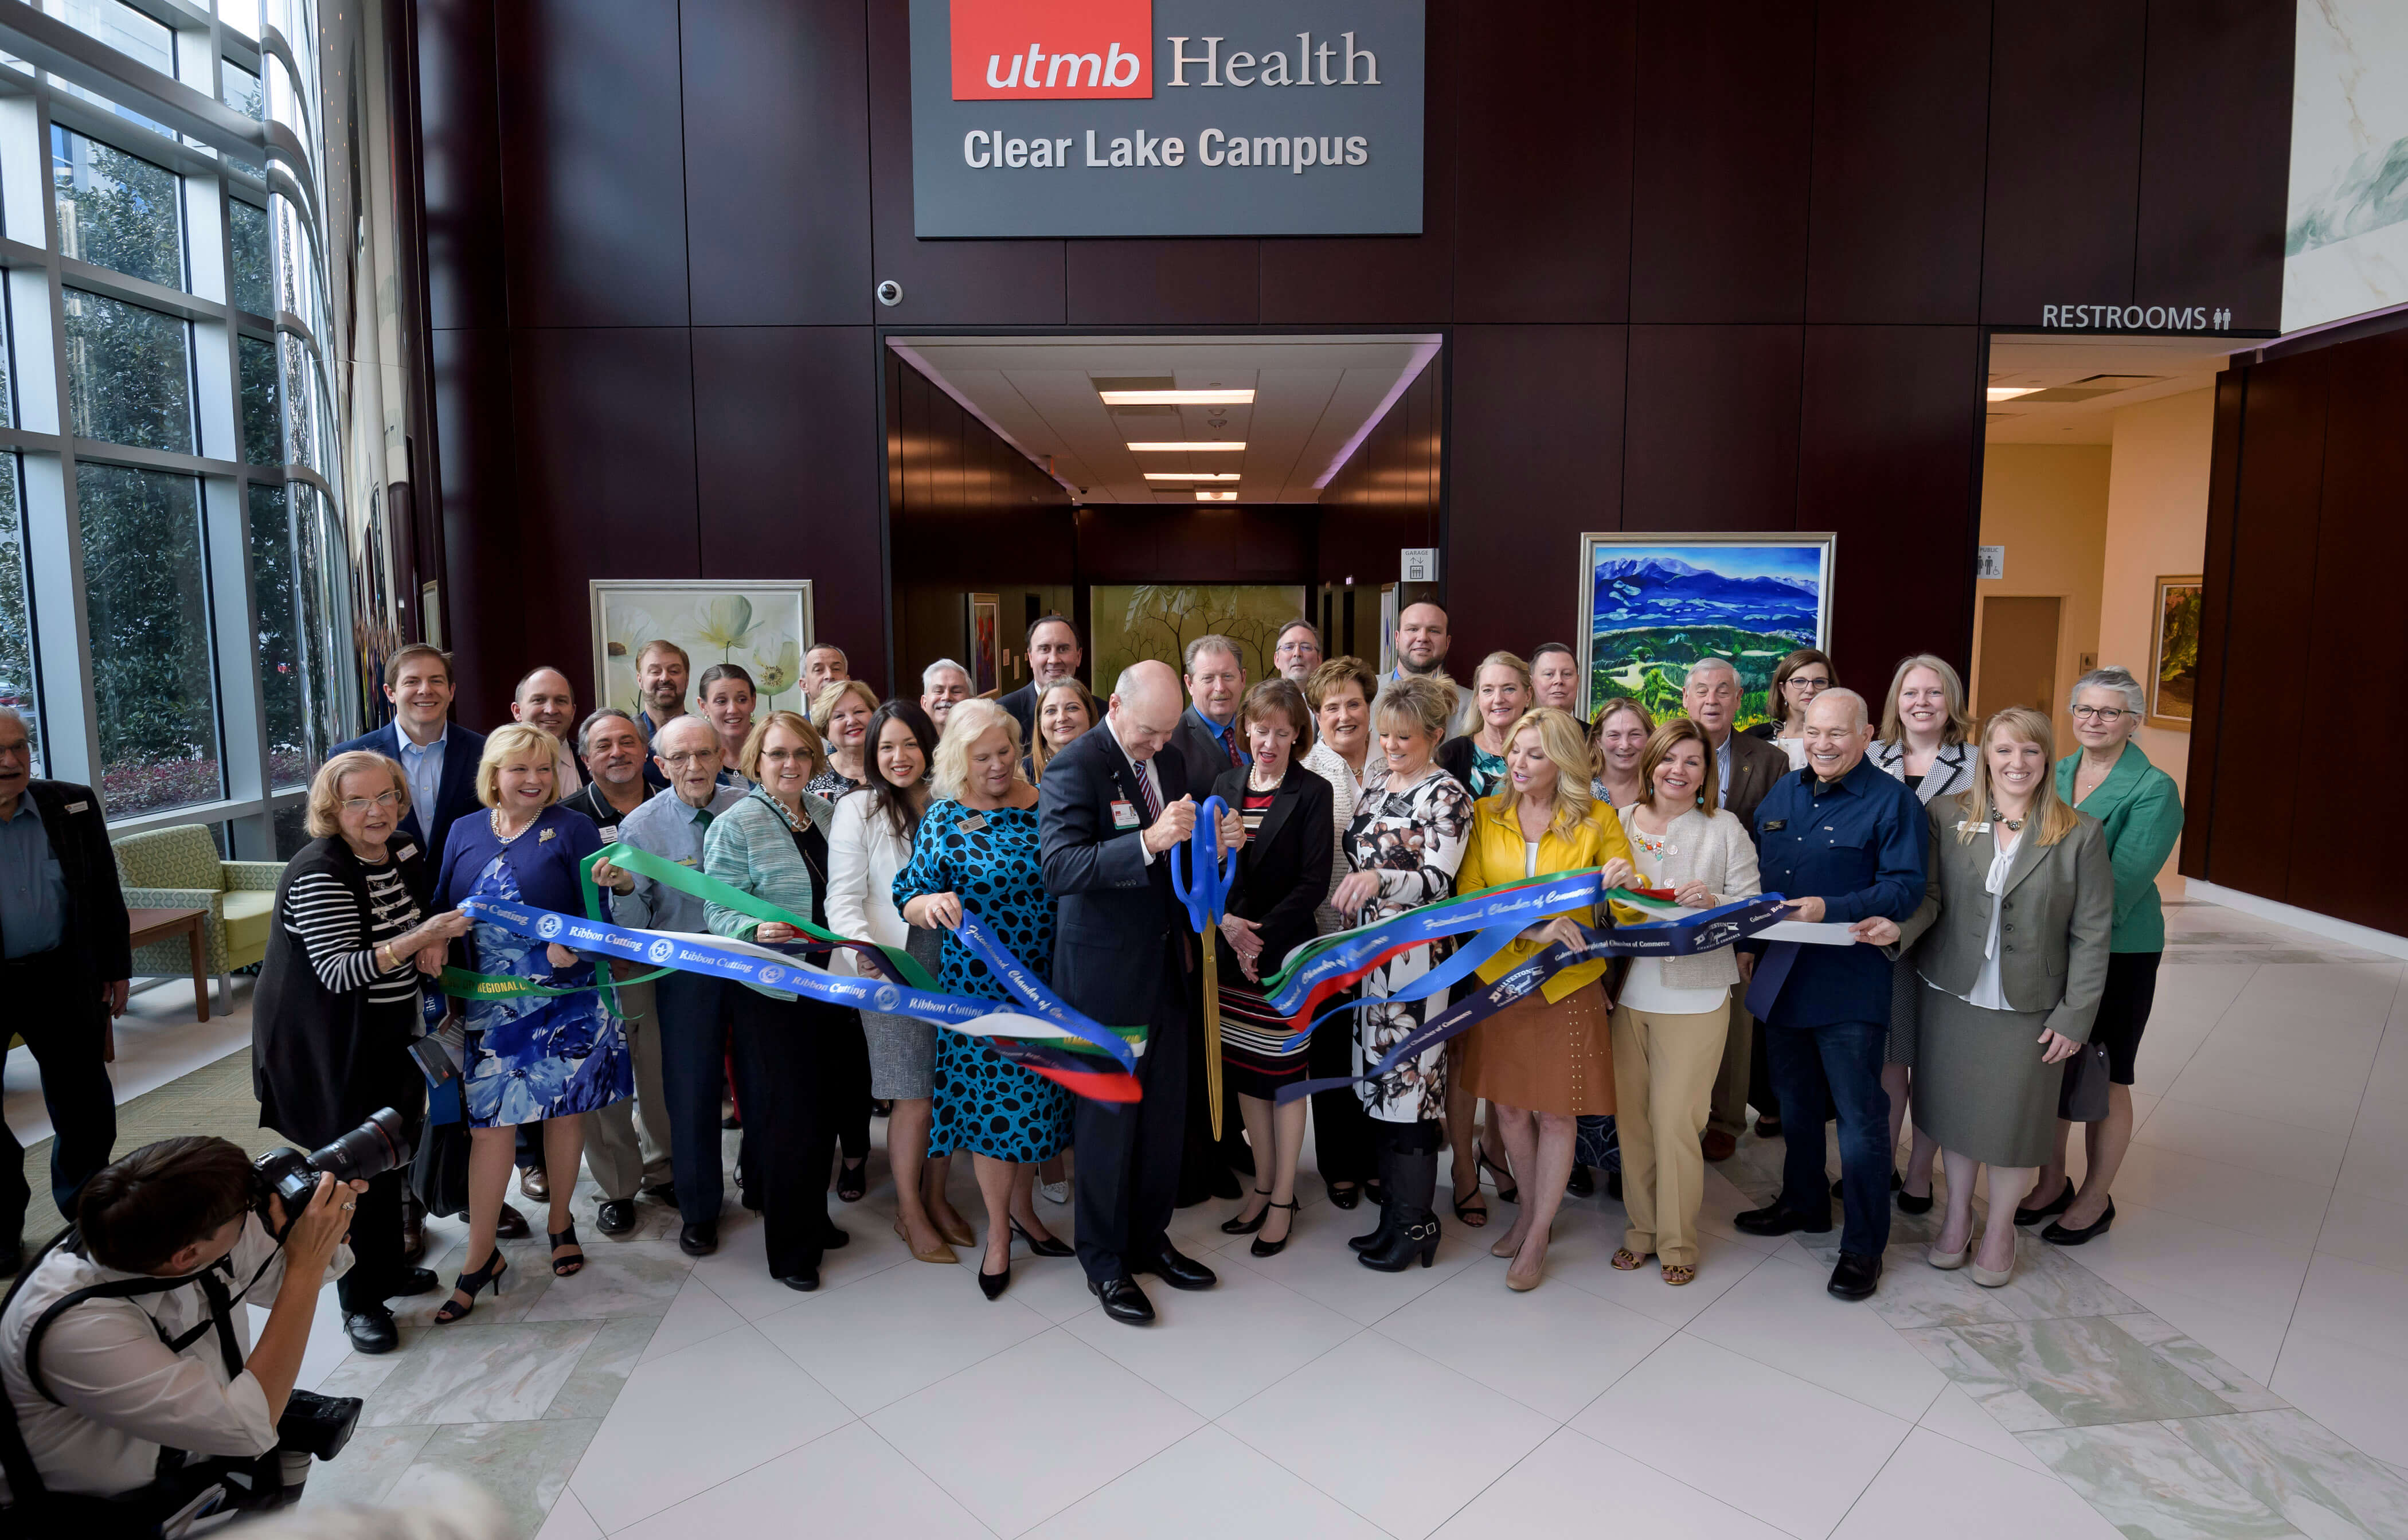 UTMB President David L. Callender, M.D., cuts the ceremonial ribbon at the UTMB Health Clear Lake Campus in Webster, Texas, during the grand opening celebration on March 20, 2019.